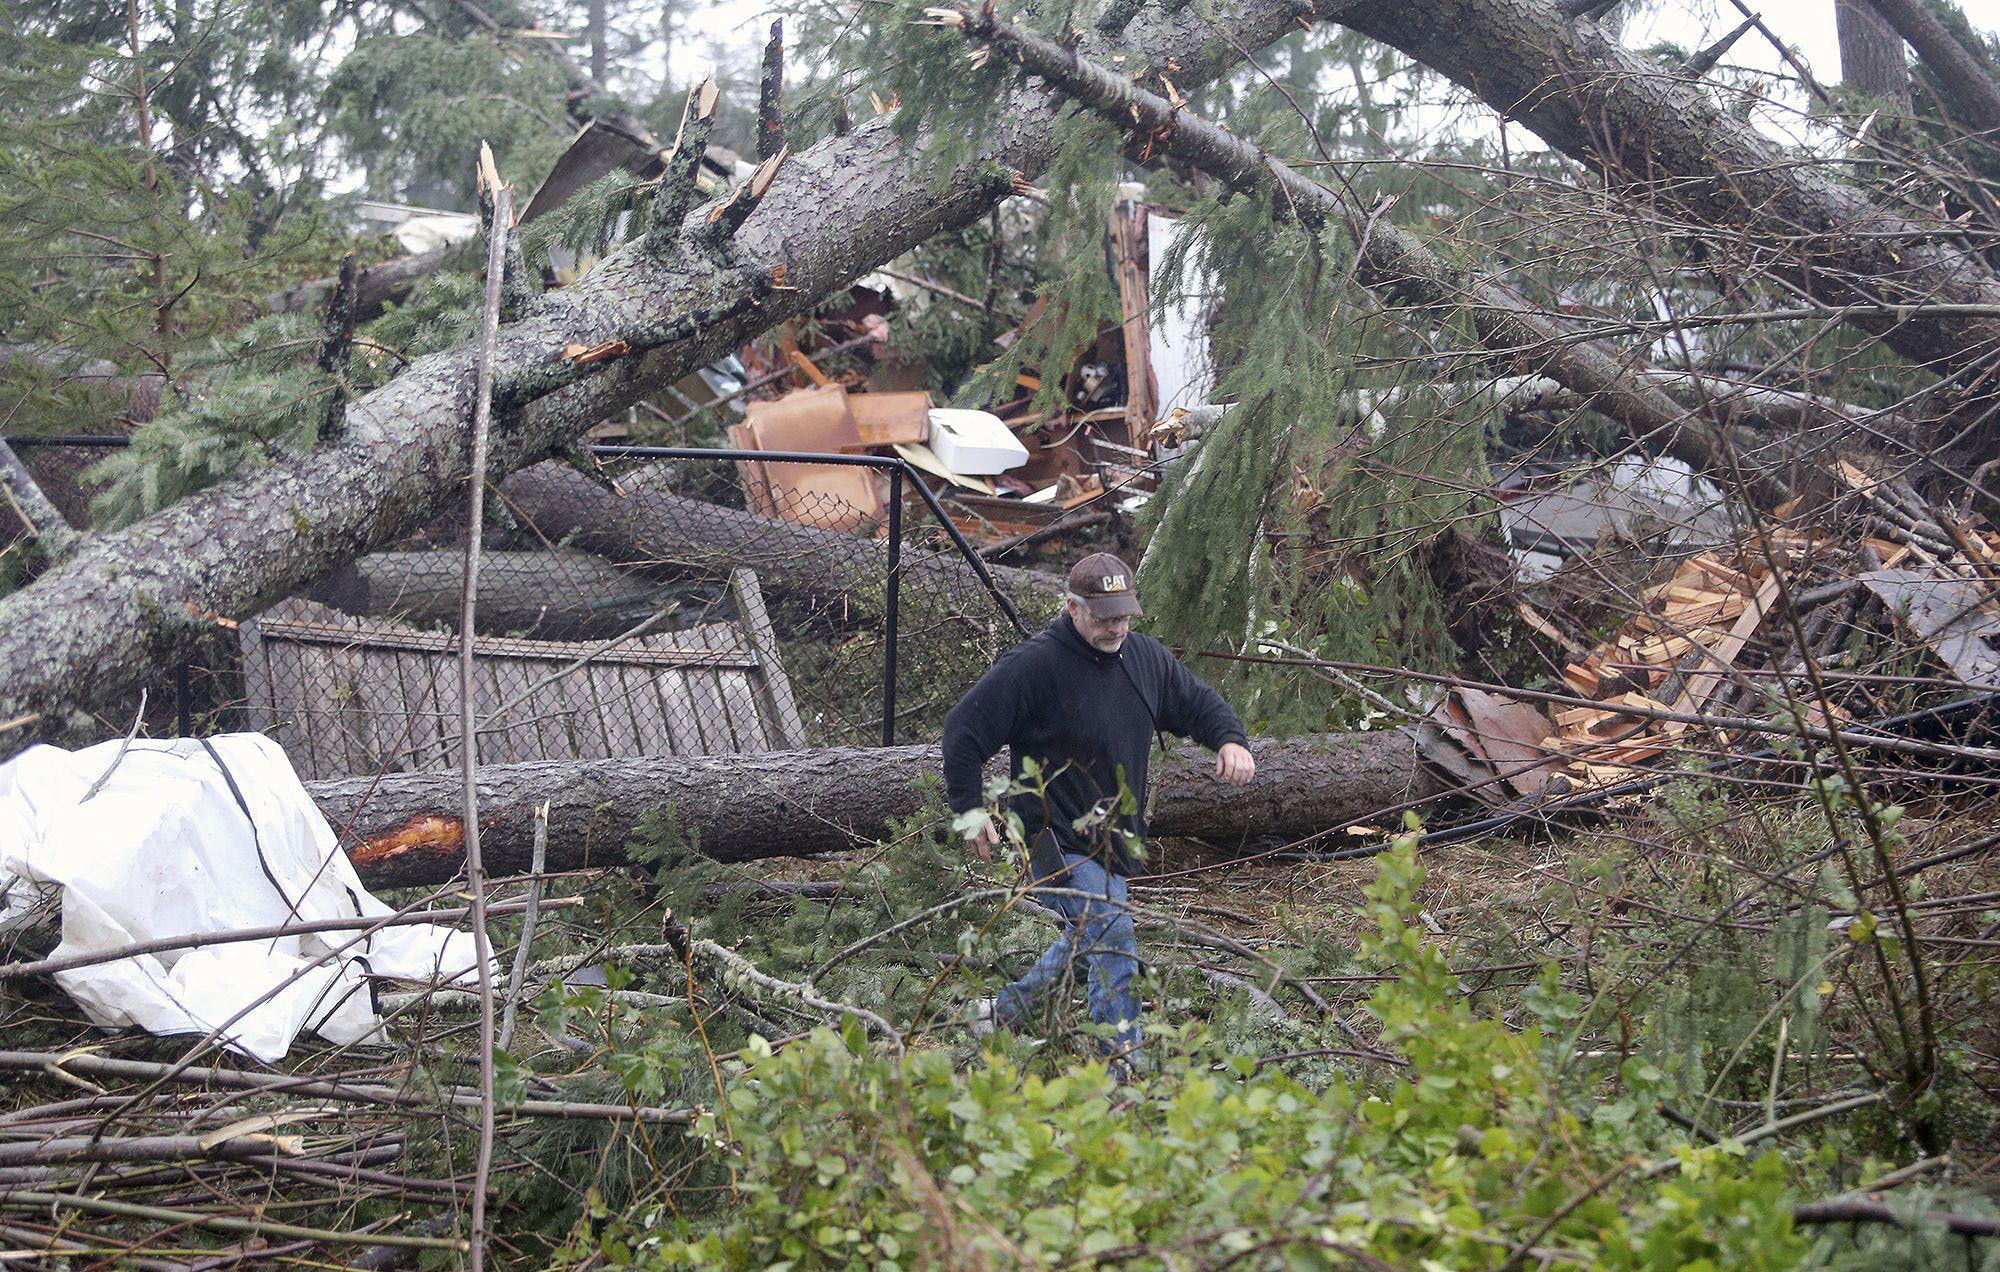 Rare December tornado touches down in suburban Seattle, causing 'catastrophic damage'